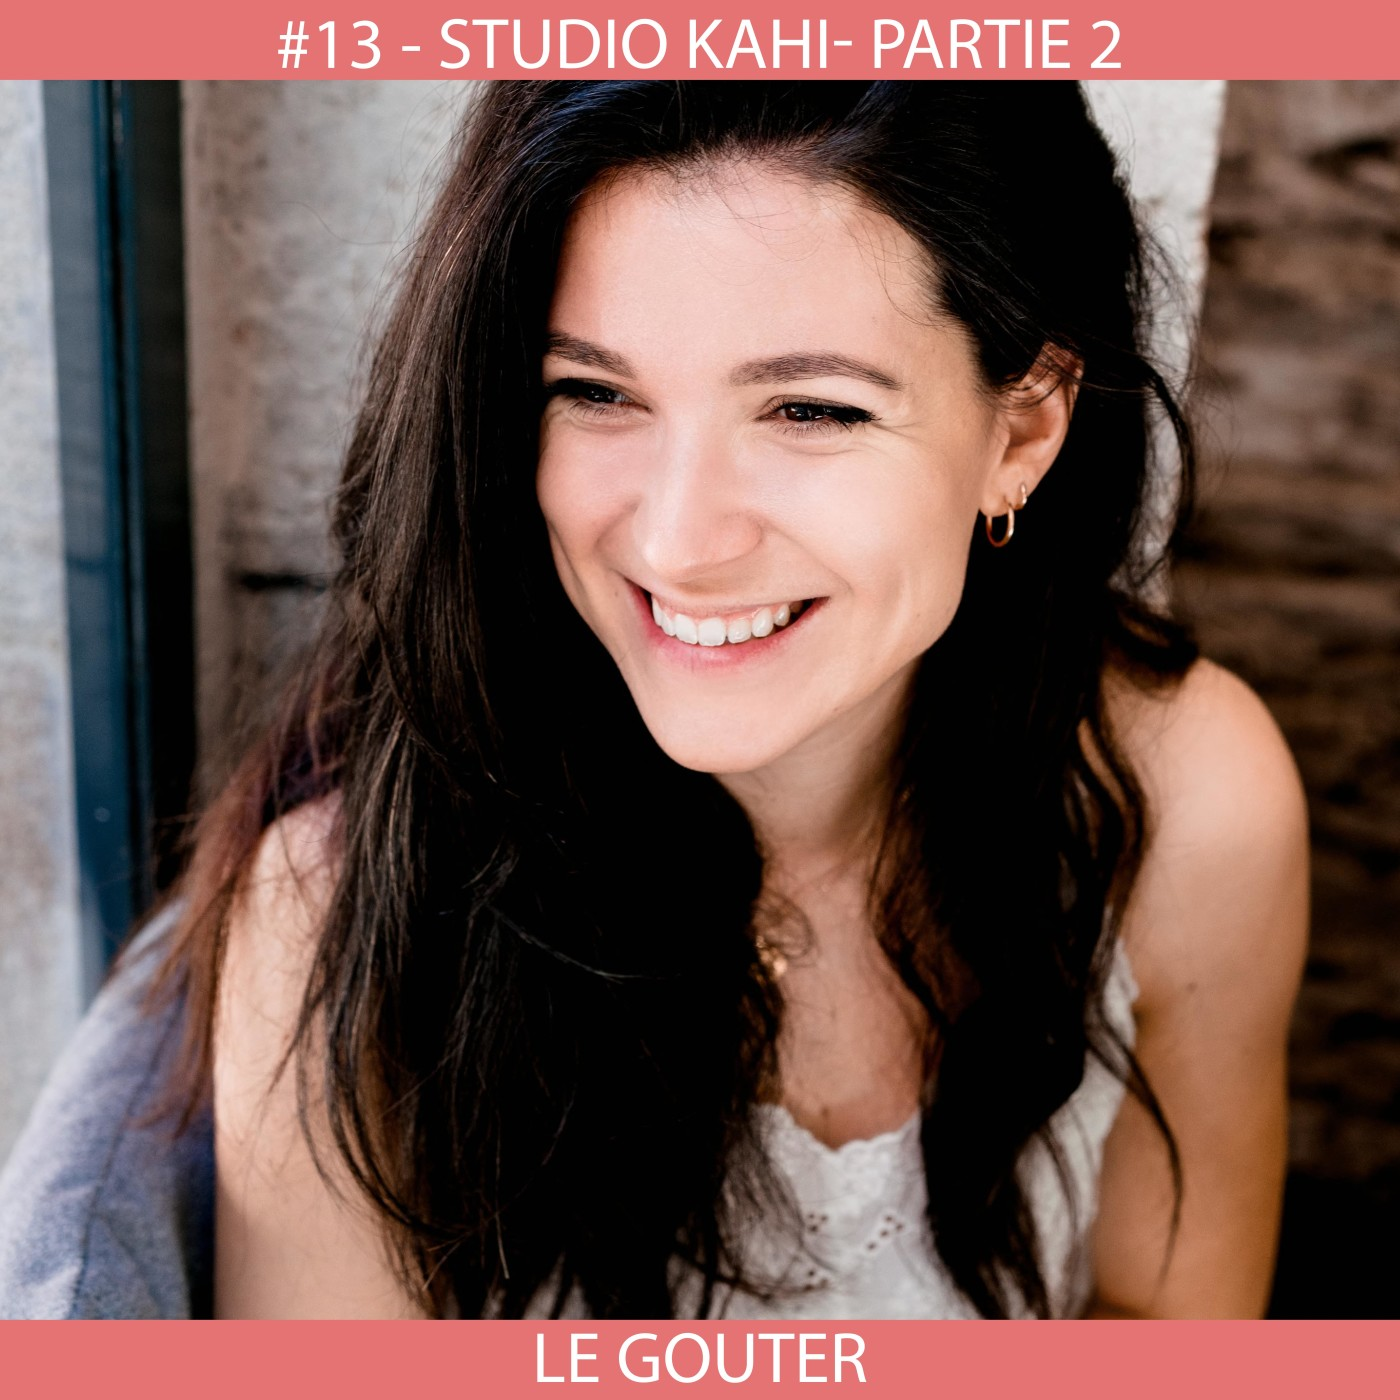 #02 - Carte Blanche - Studio Kahi Part 2